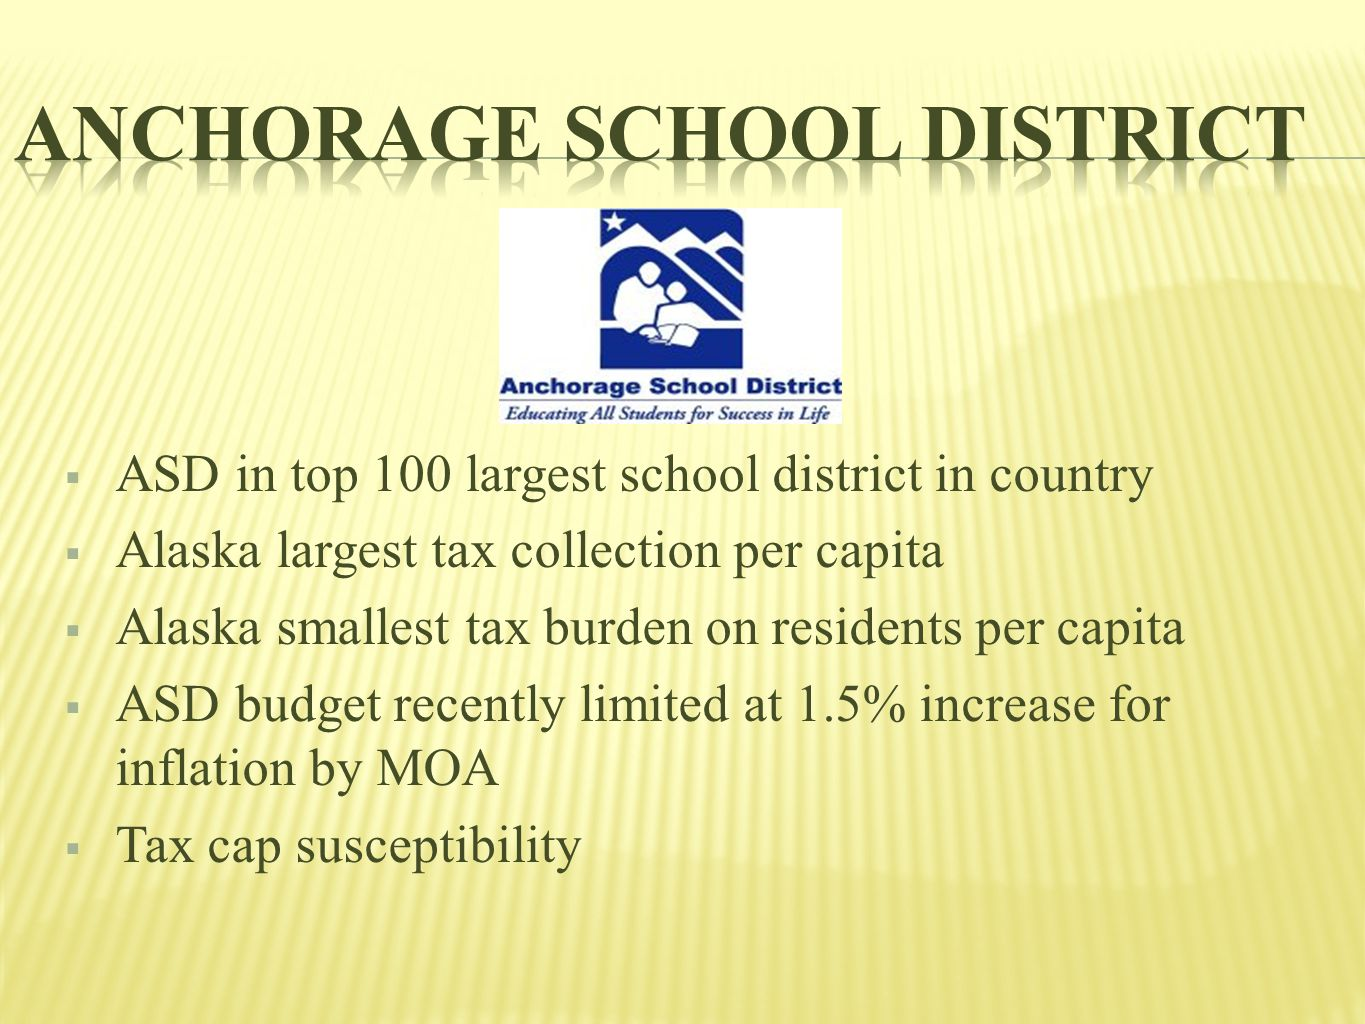  ASD in top 100 largest school district in country  Alaska largest tax collection per capita  Alaska smallest tax burden on residents per capita  ASD budget recently limited at 1.5% increase for inflation by MOA  Tax cap susceptibility